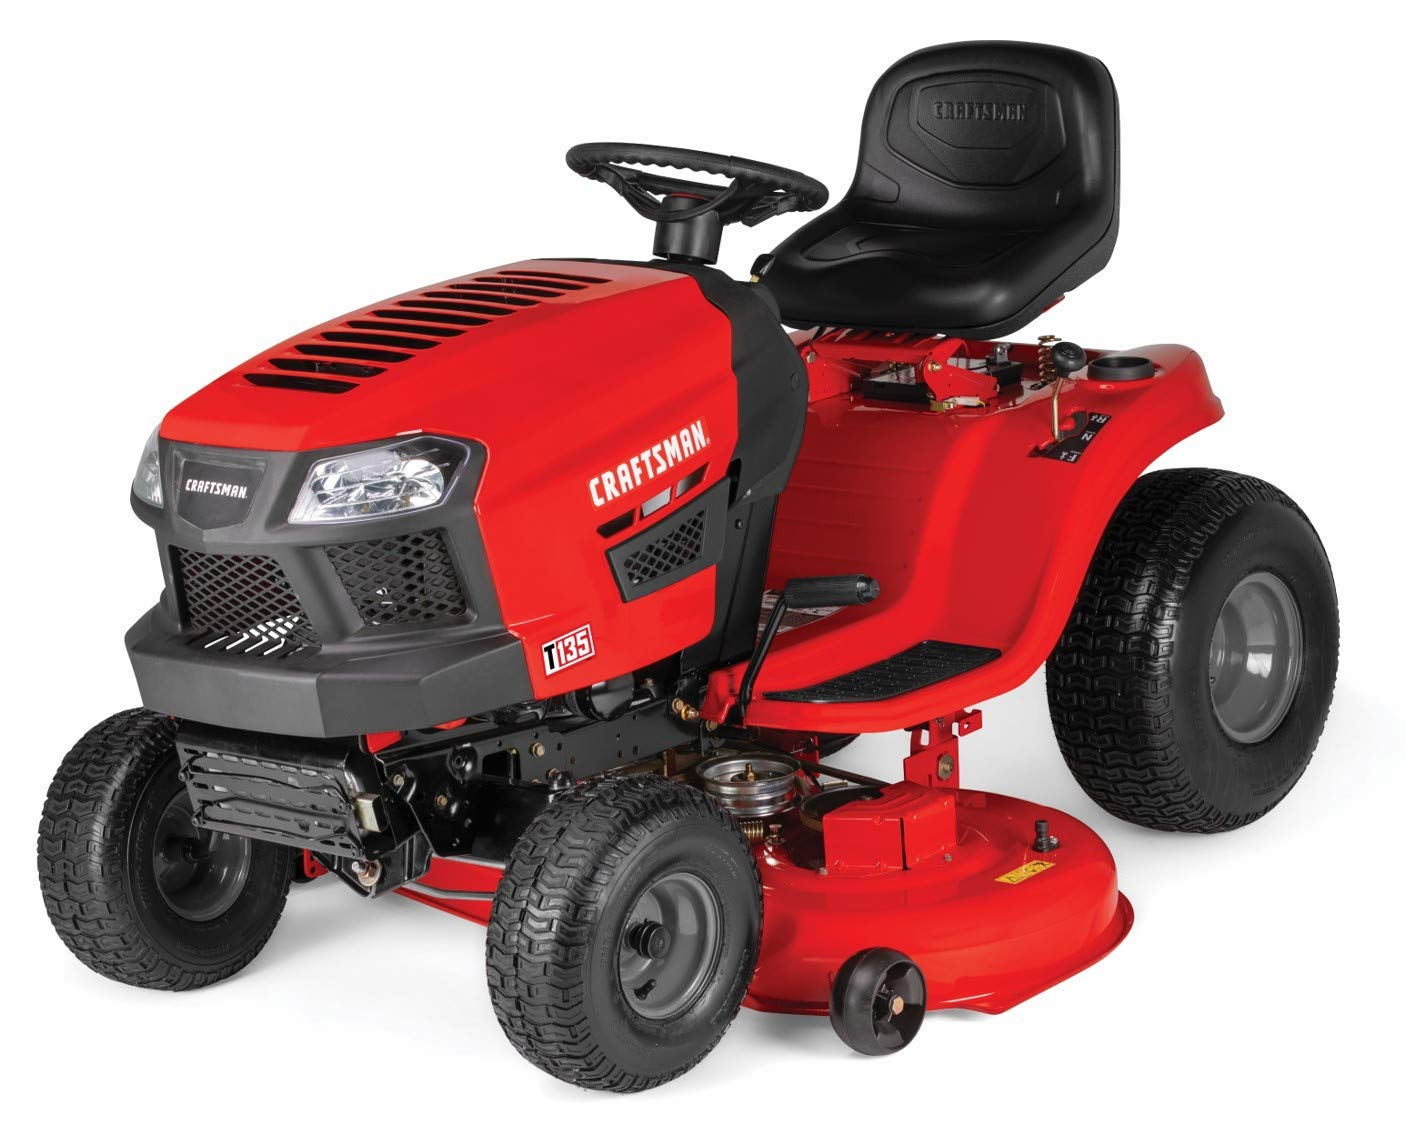 Craftsman T135 18.5 HP Briggs & Stratton 46 Inch Gas Powered Riding Lawn Mower